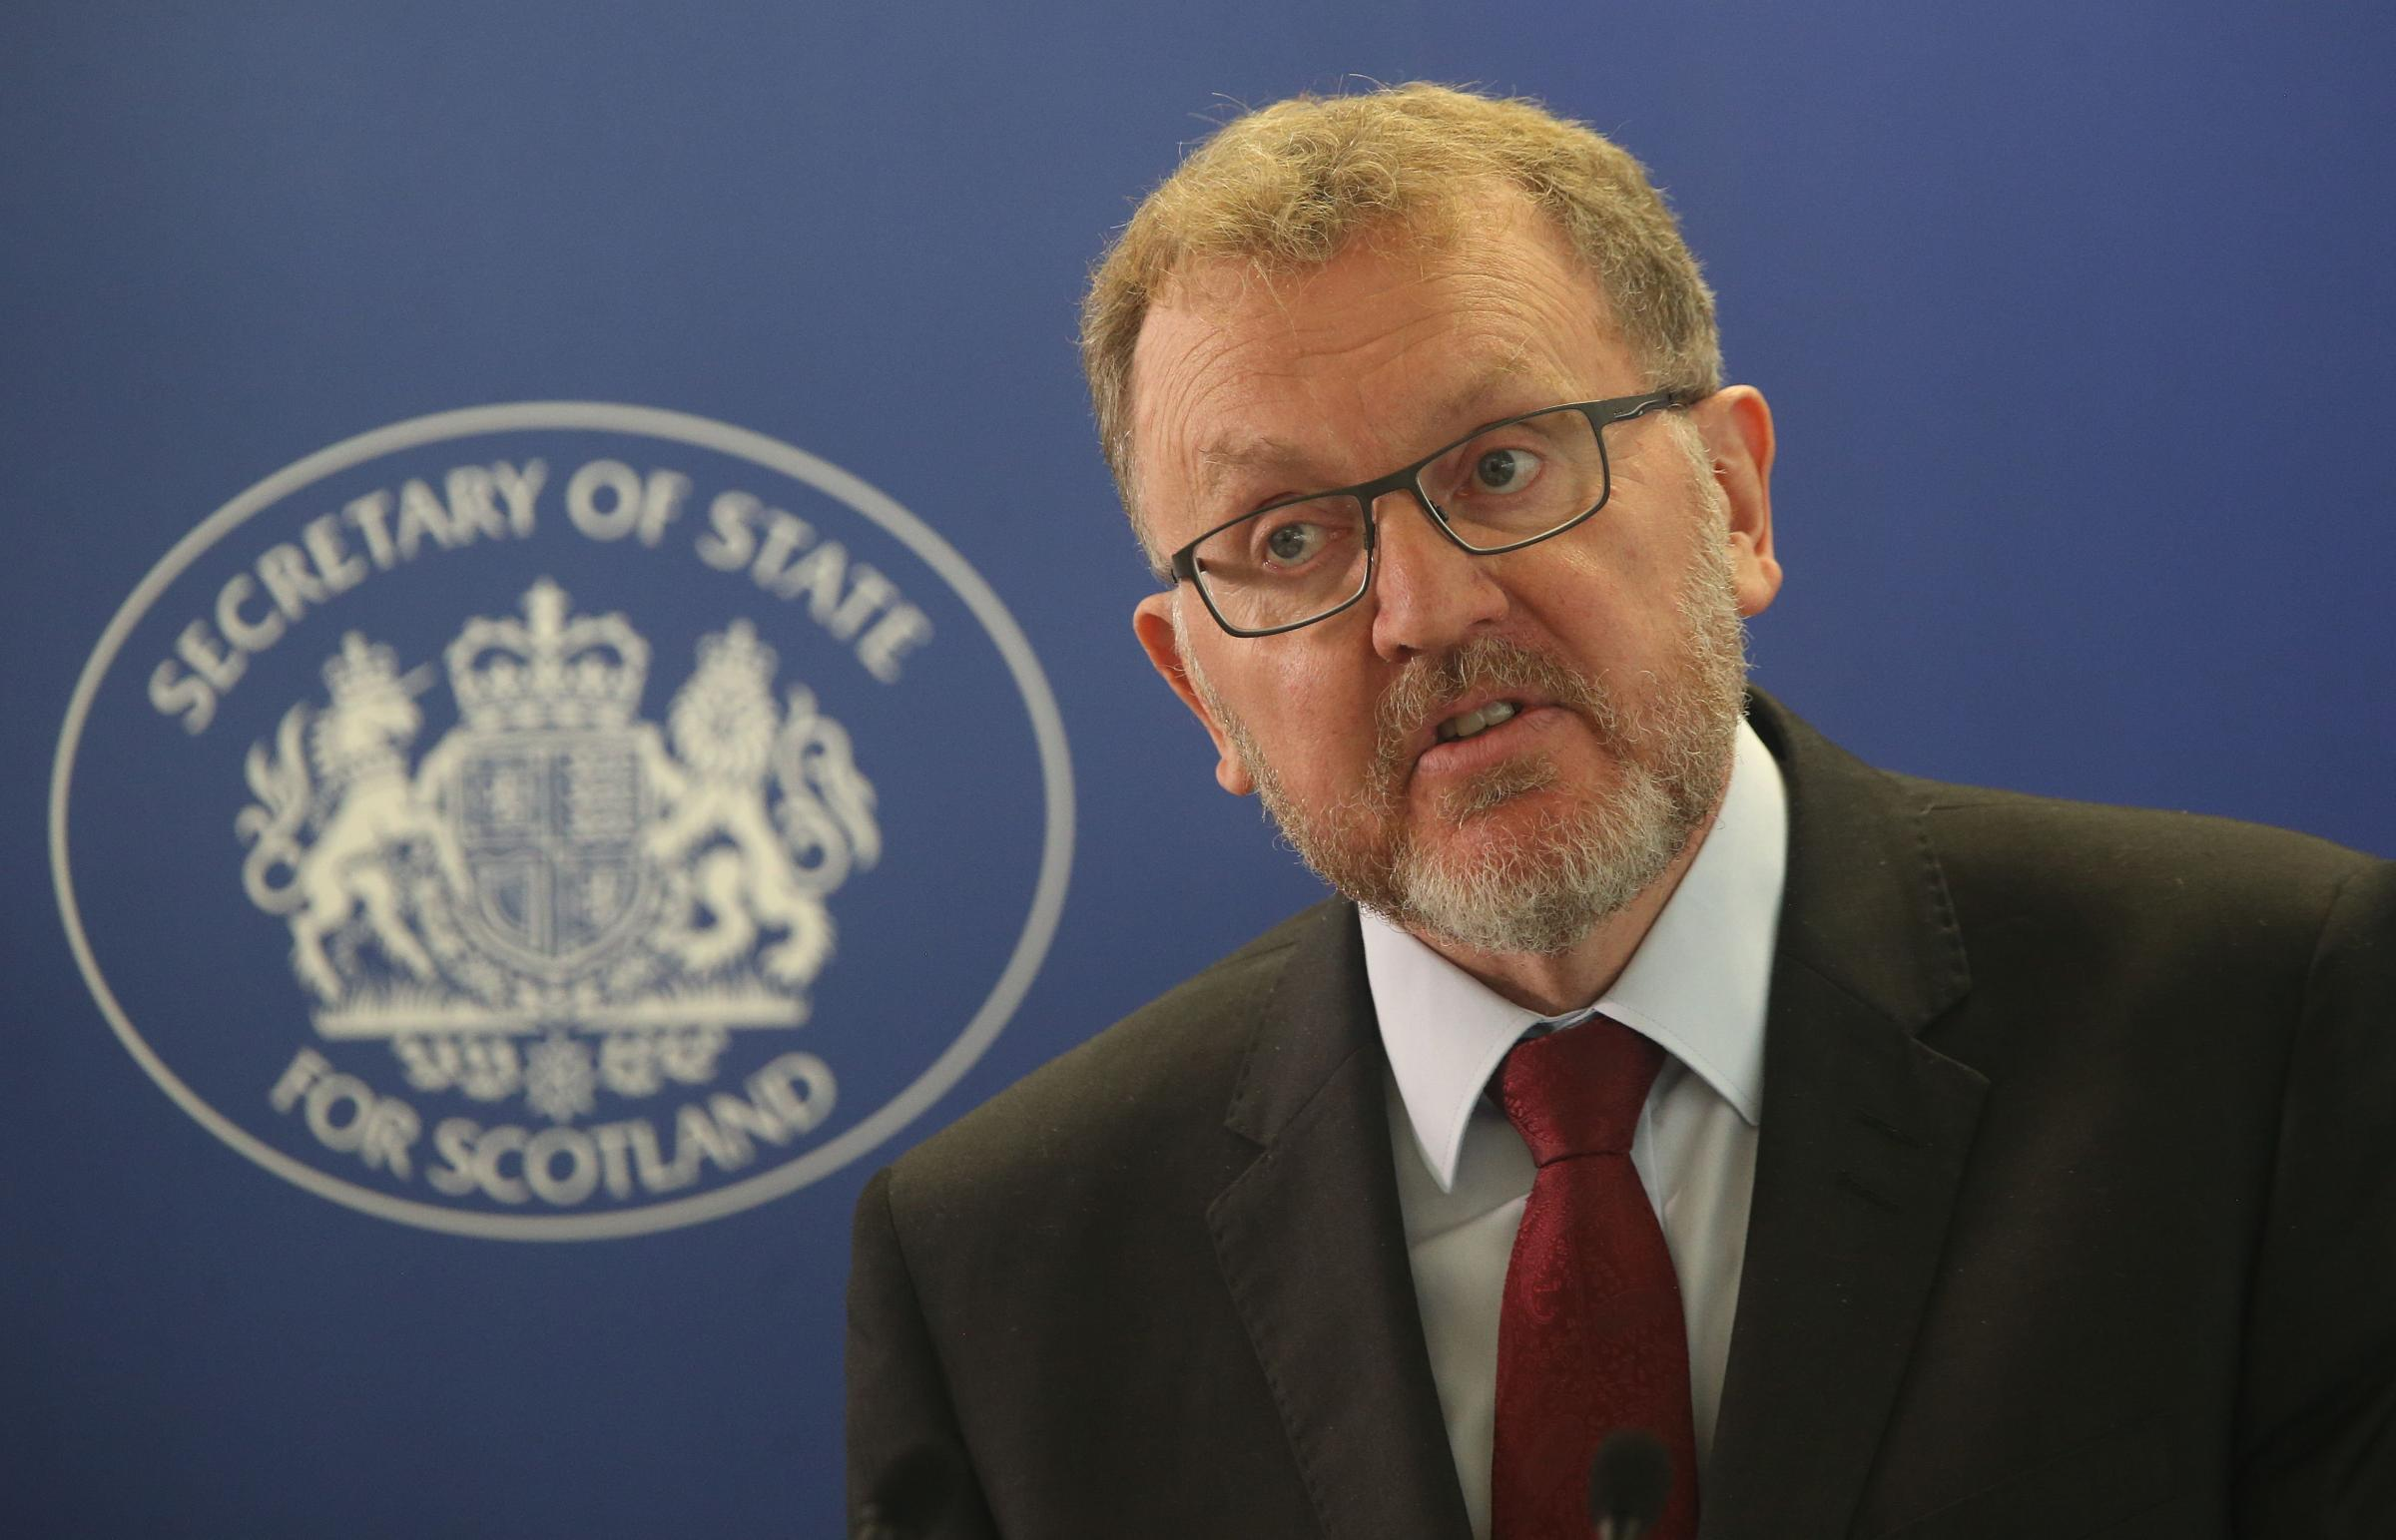 Scotland Secretary David Mundell was accused of continuing to fail Scotland